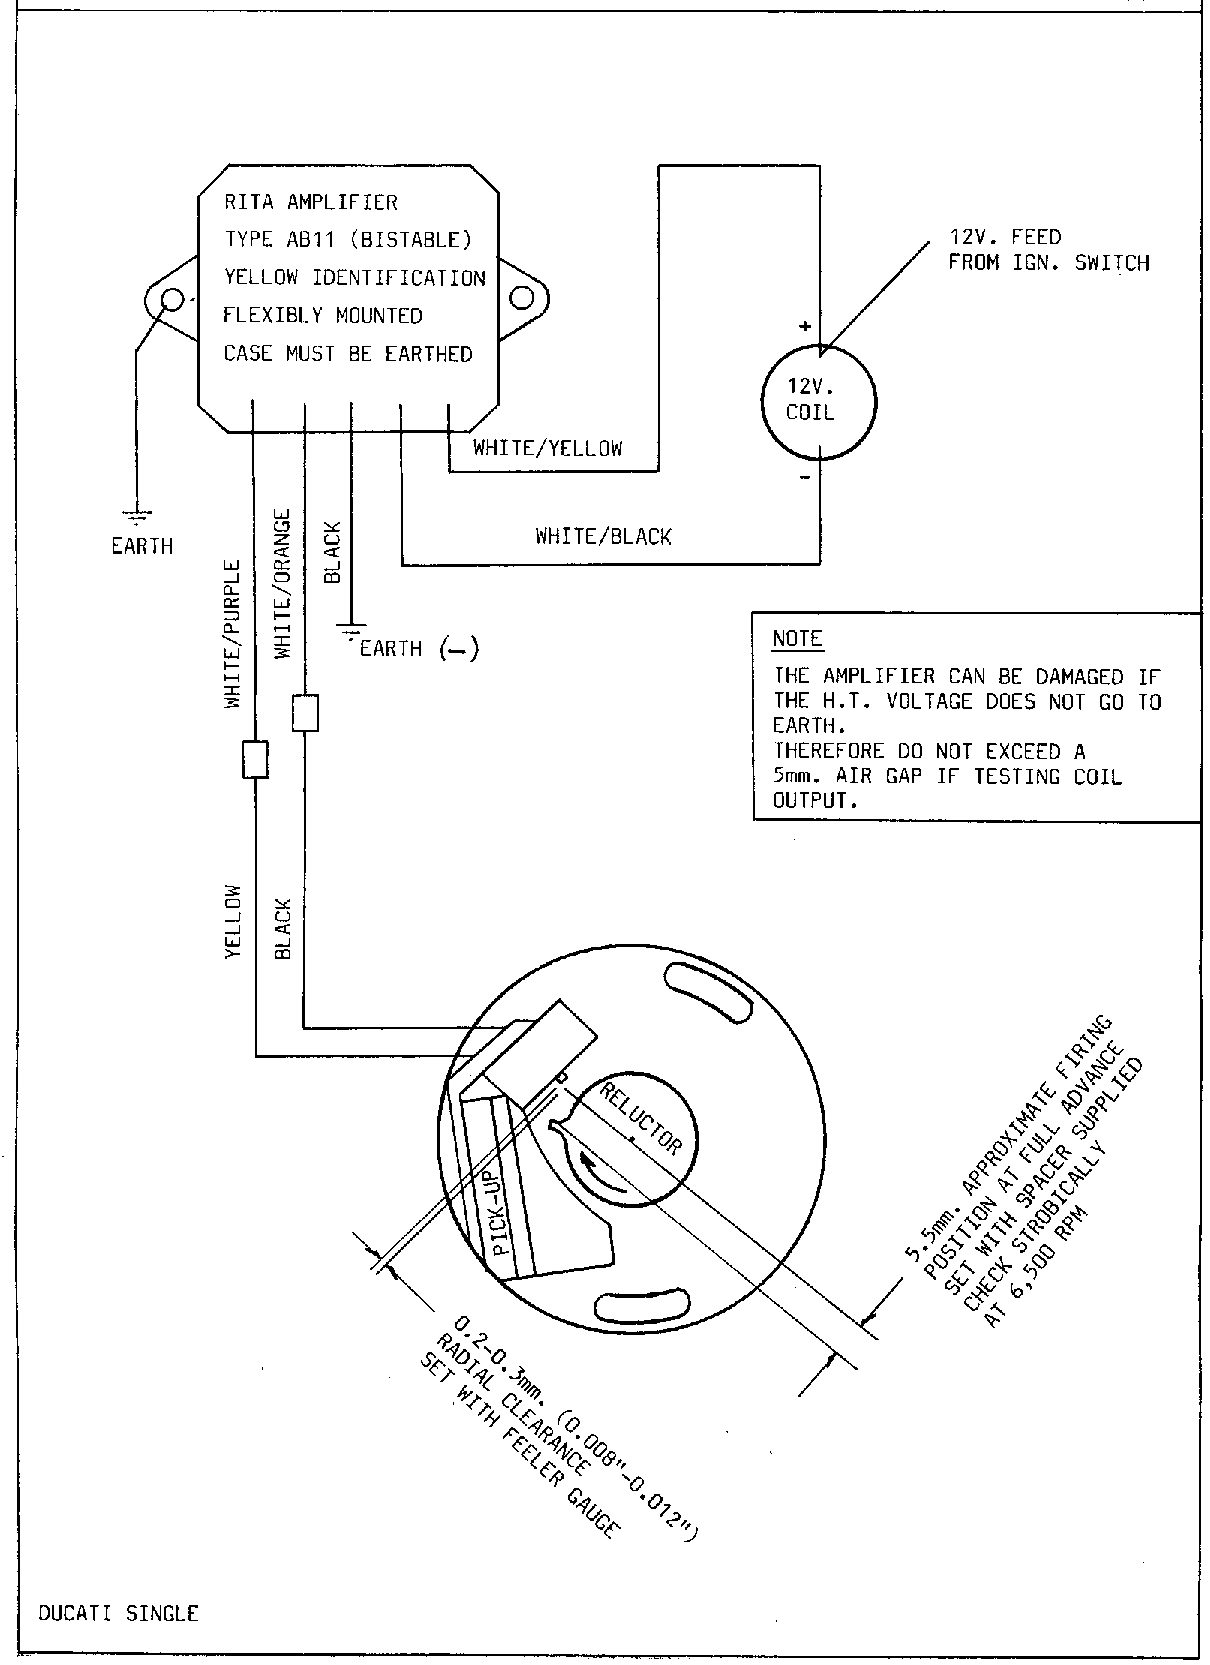 Lucas Rita Electronic Ignition Wiring Diagram